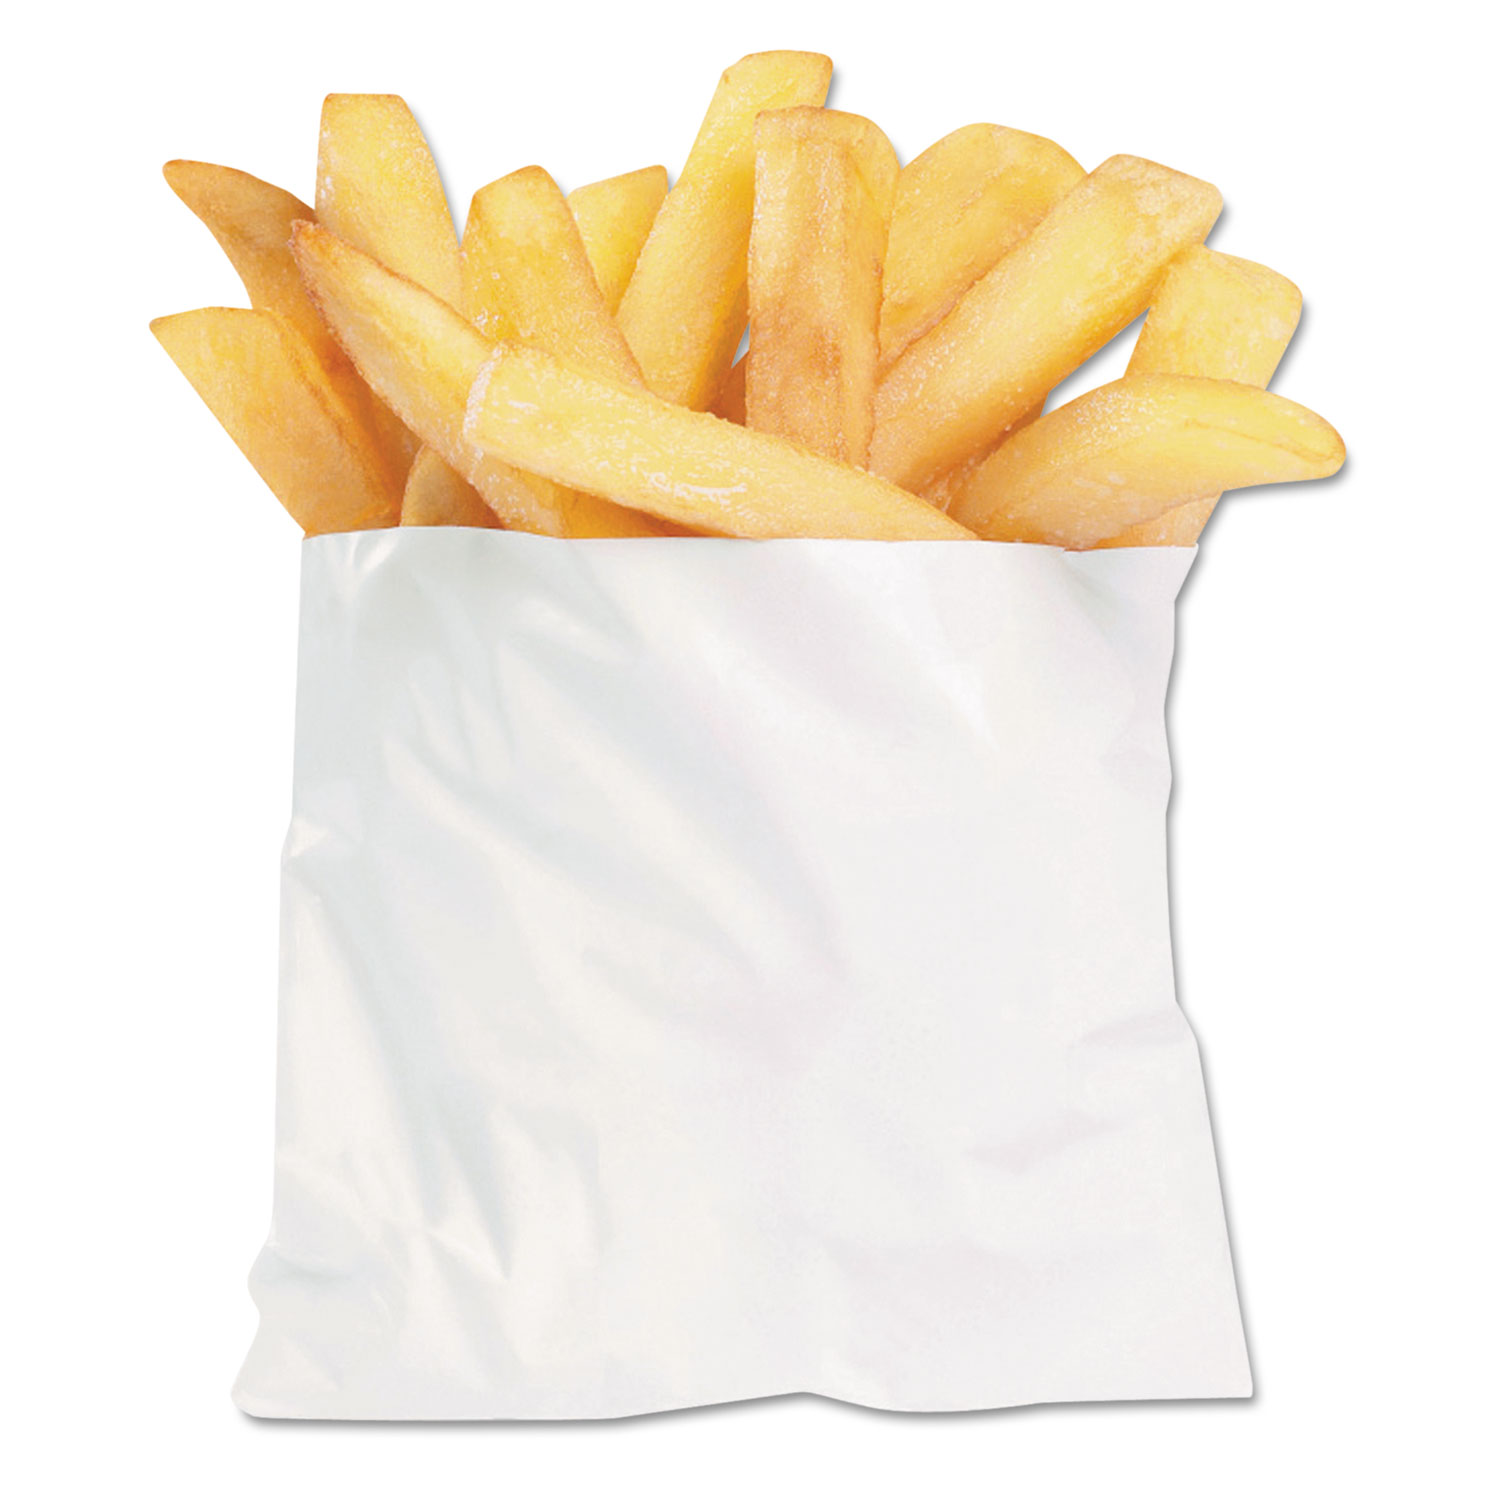 PB3 French Fry Bags, 4 1/2 x 2 x 3 1/2, White, 2000/Carton